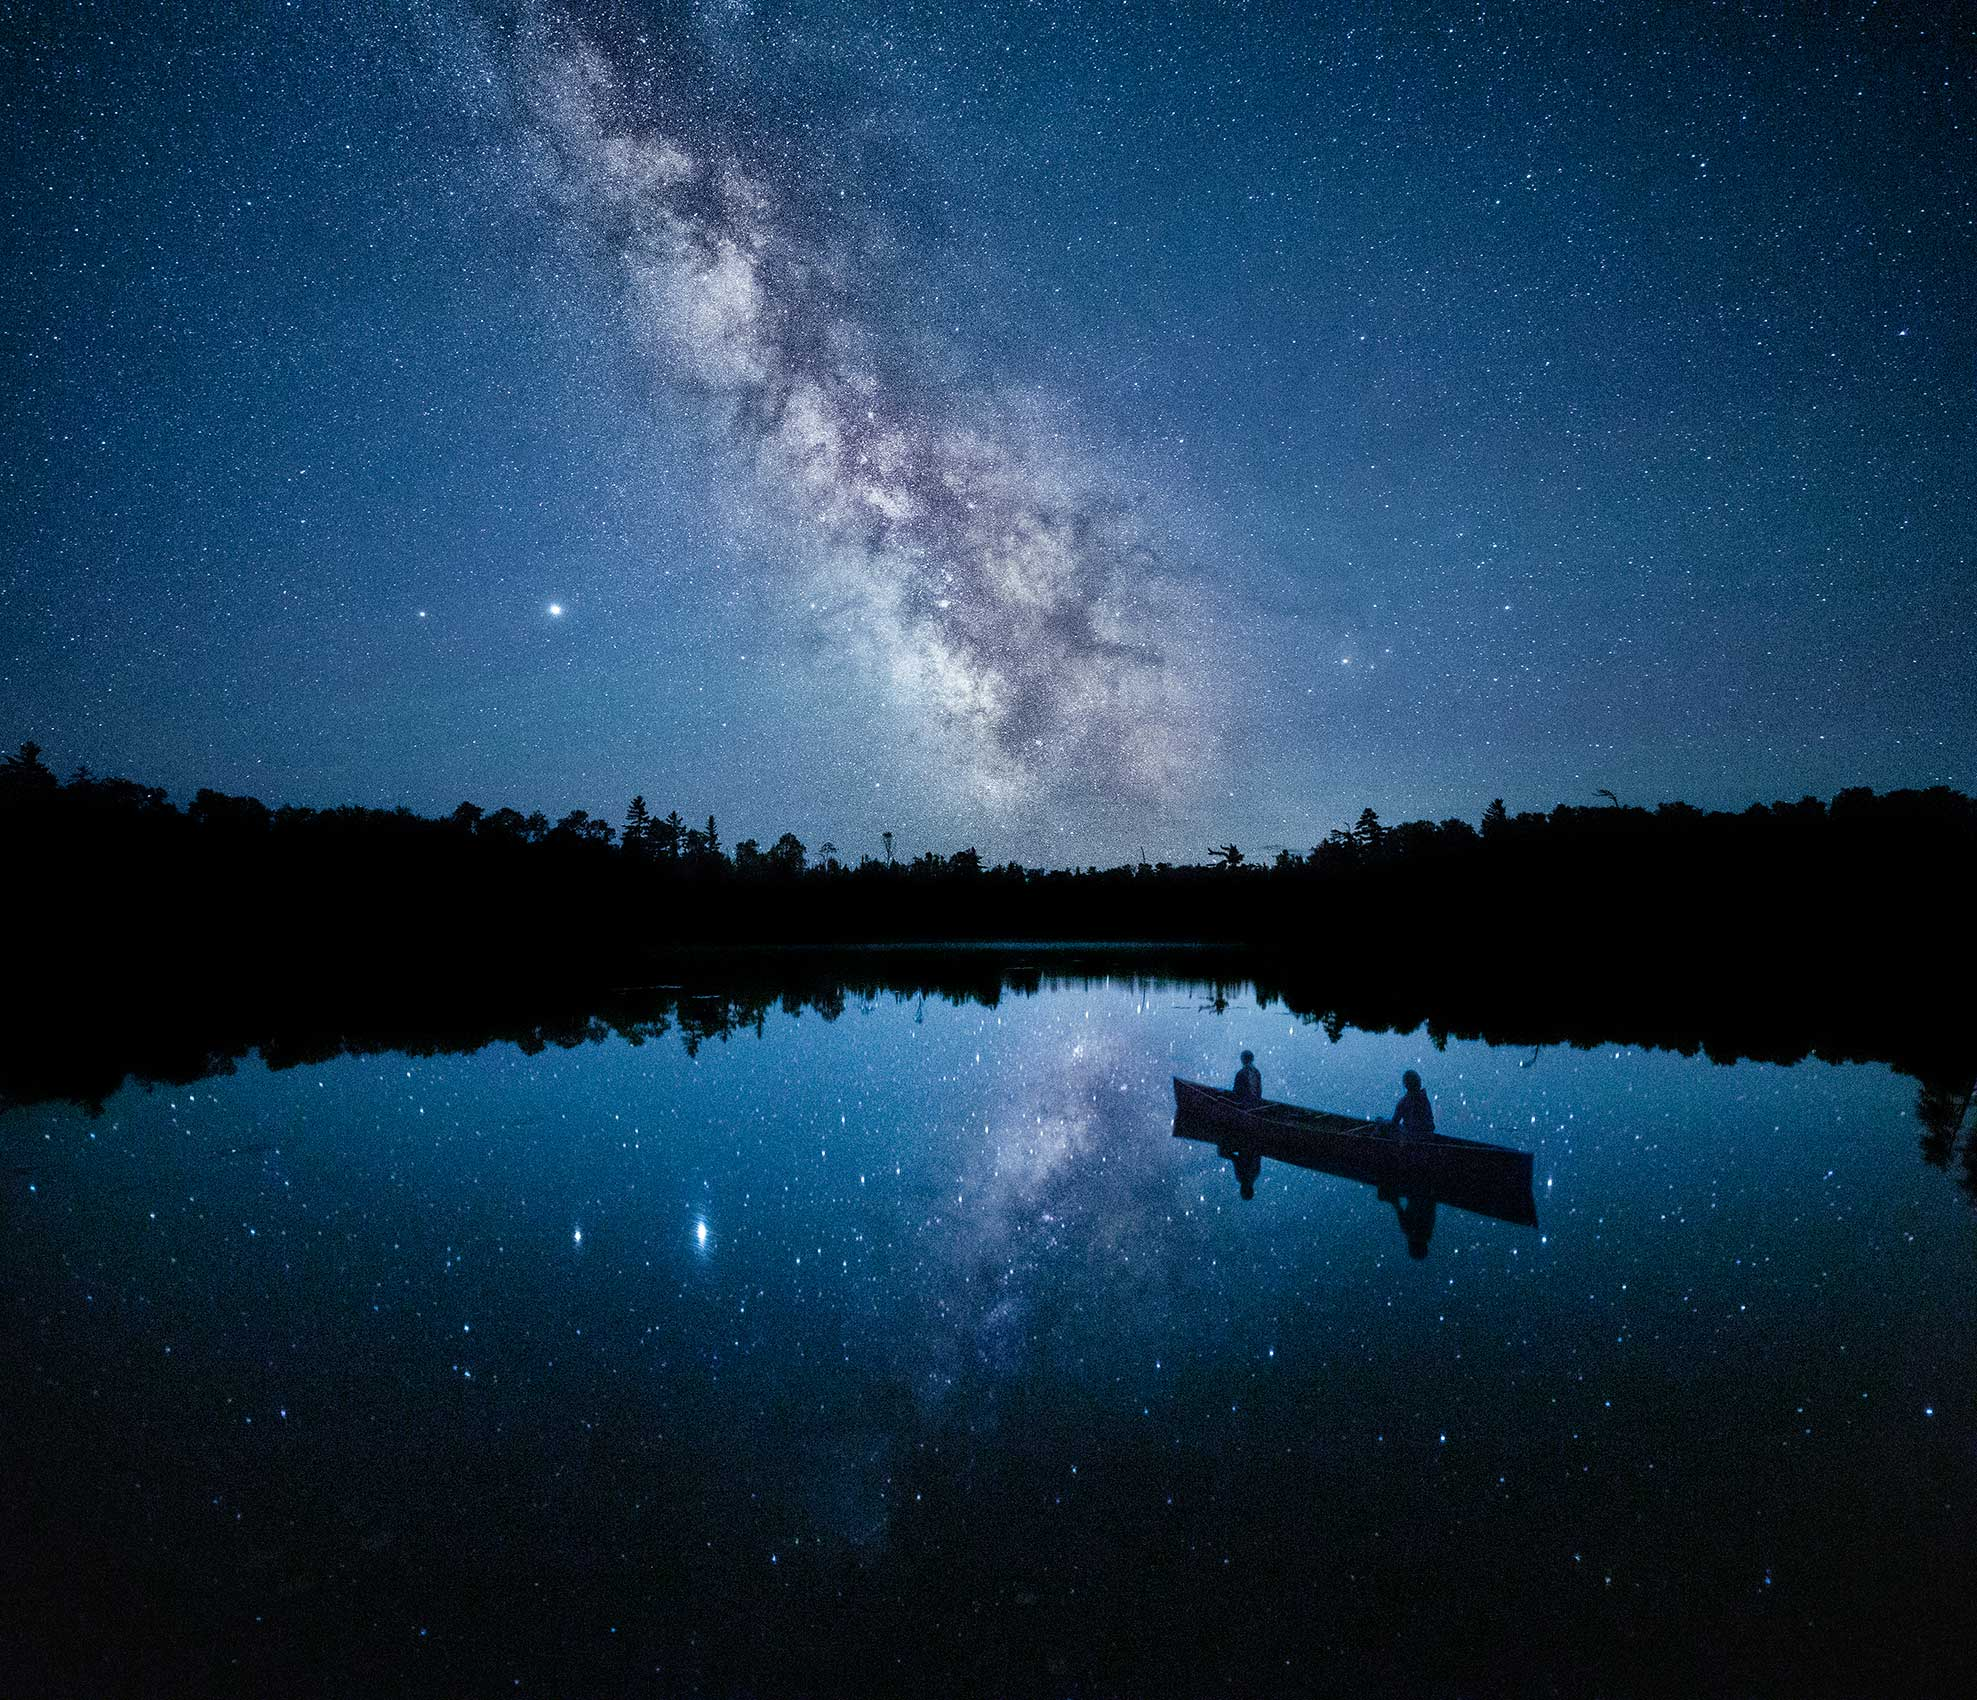 Stars-in-the-lake-and-canoe